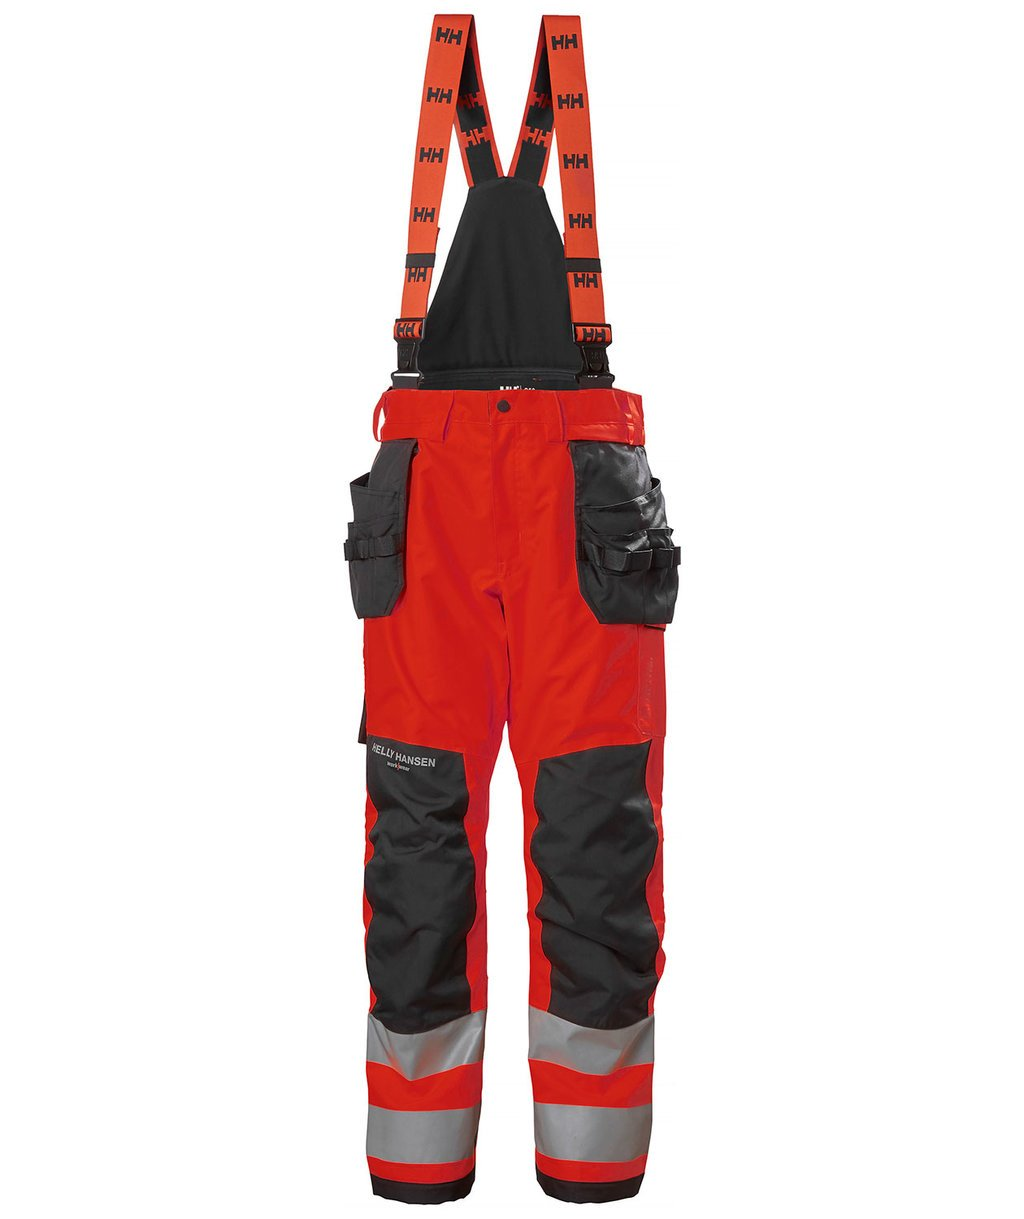 Helly Hansen WW Alna 2.0 winter trousers, Hi-Vis Red/Charcoal